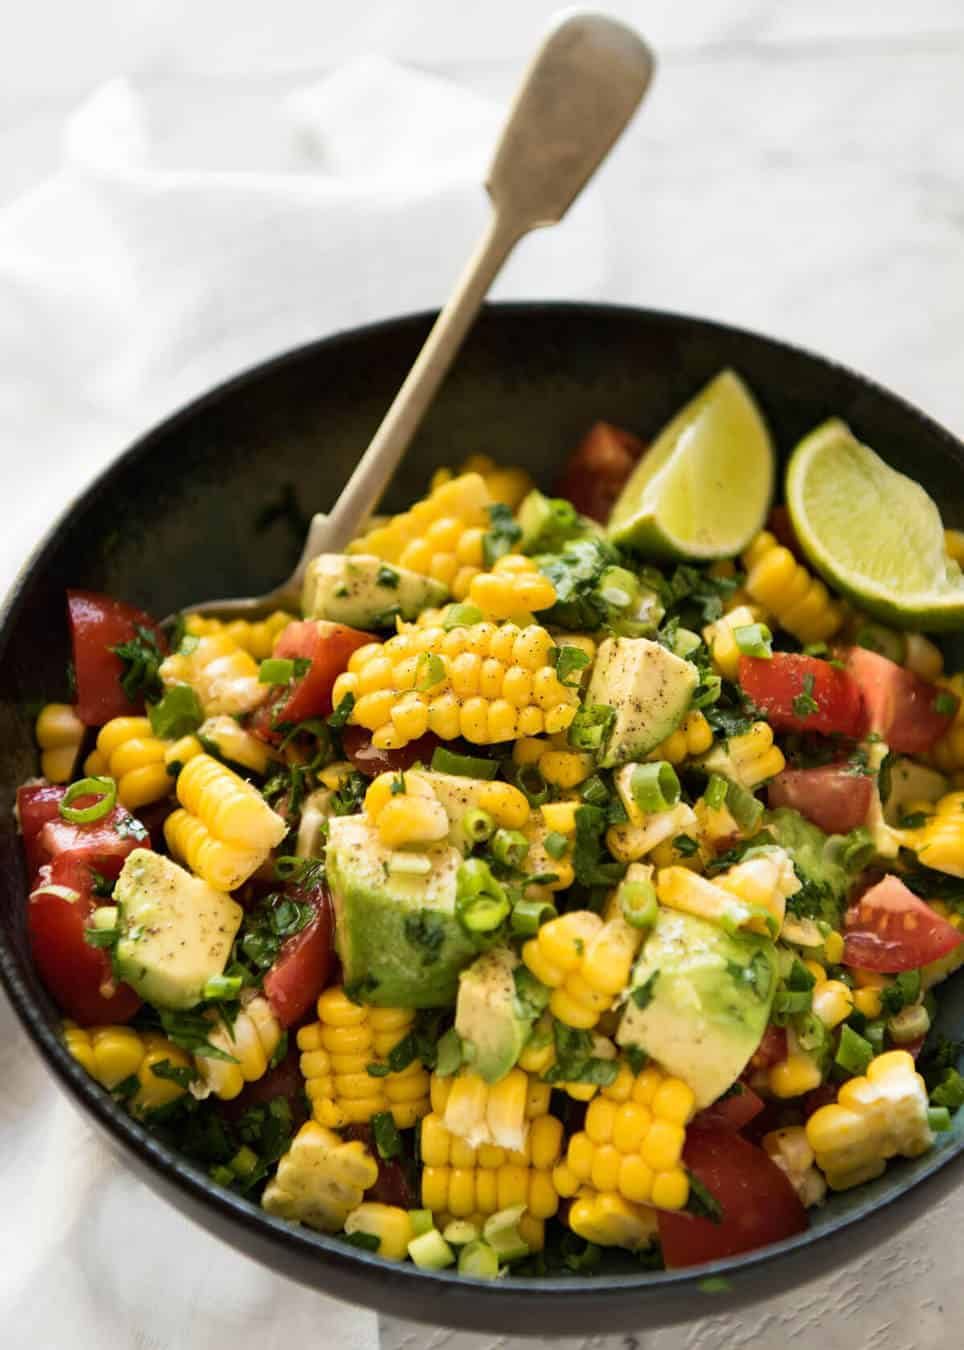 My favourite Corn Salad - made with fresh or canned corn, tomato, avocado, shallots/scallions, coriander/cilantro and a lime or lemon dressing. www.recipetineats.com